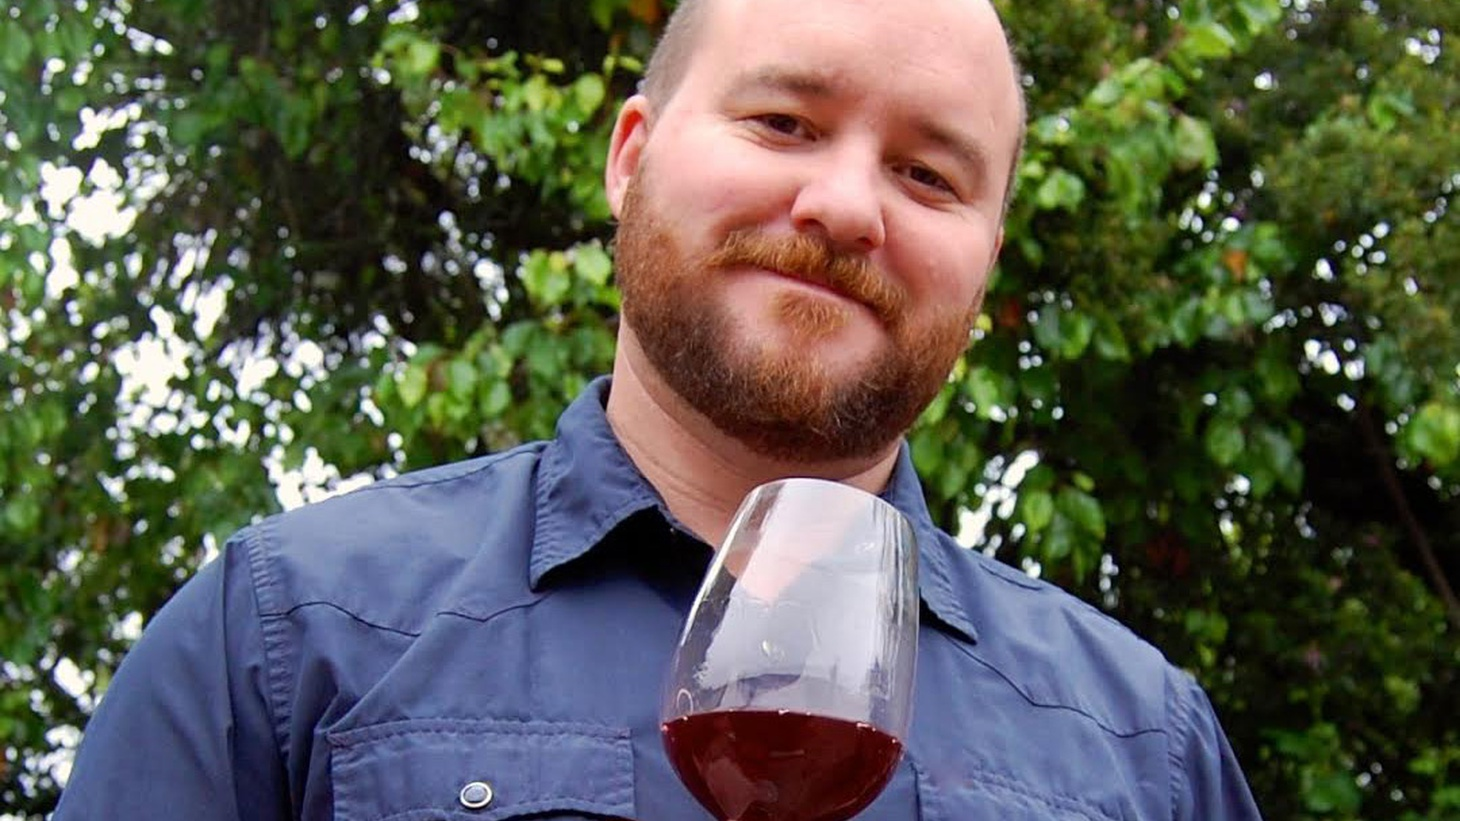 We've all heard of Merlot, Chardonnay, and Pinot Noir, but there are actually thousands of grape varieties in the world. Now, a slowly growing number of winemakers in California are beginning to plant varietals most people have never heard of.